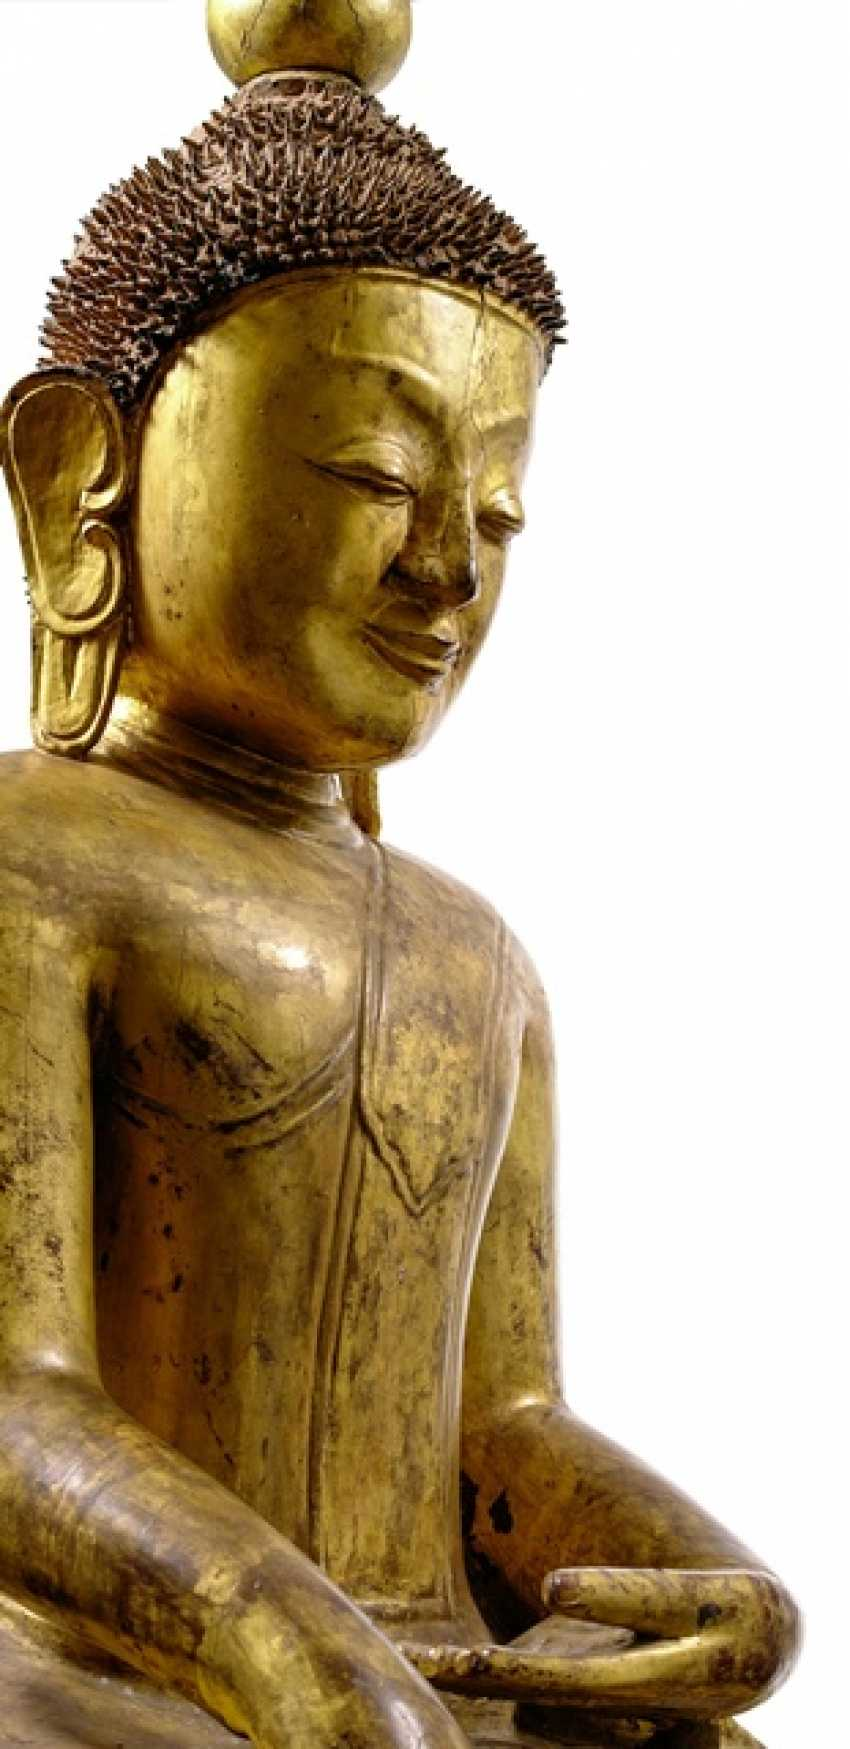 Monumental figure of Buddha Shakyamuni, made of wood with black and Golden lacquer collection - photo 2